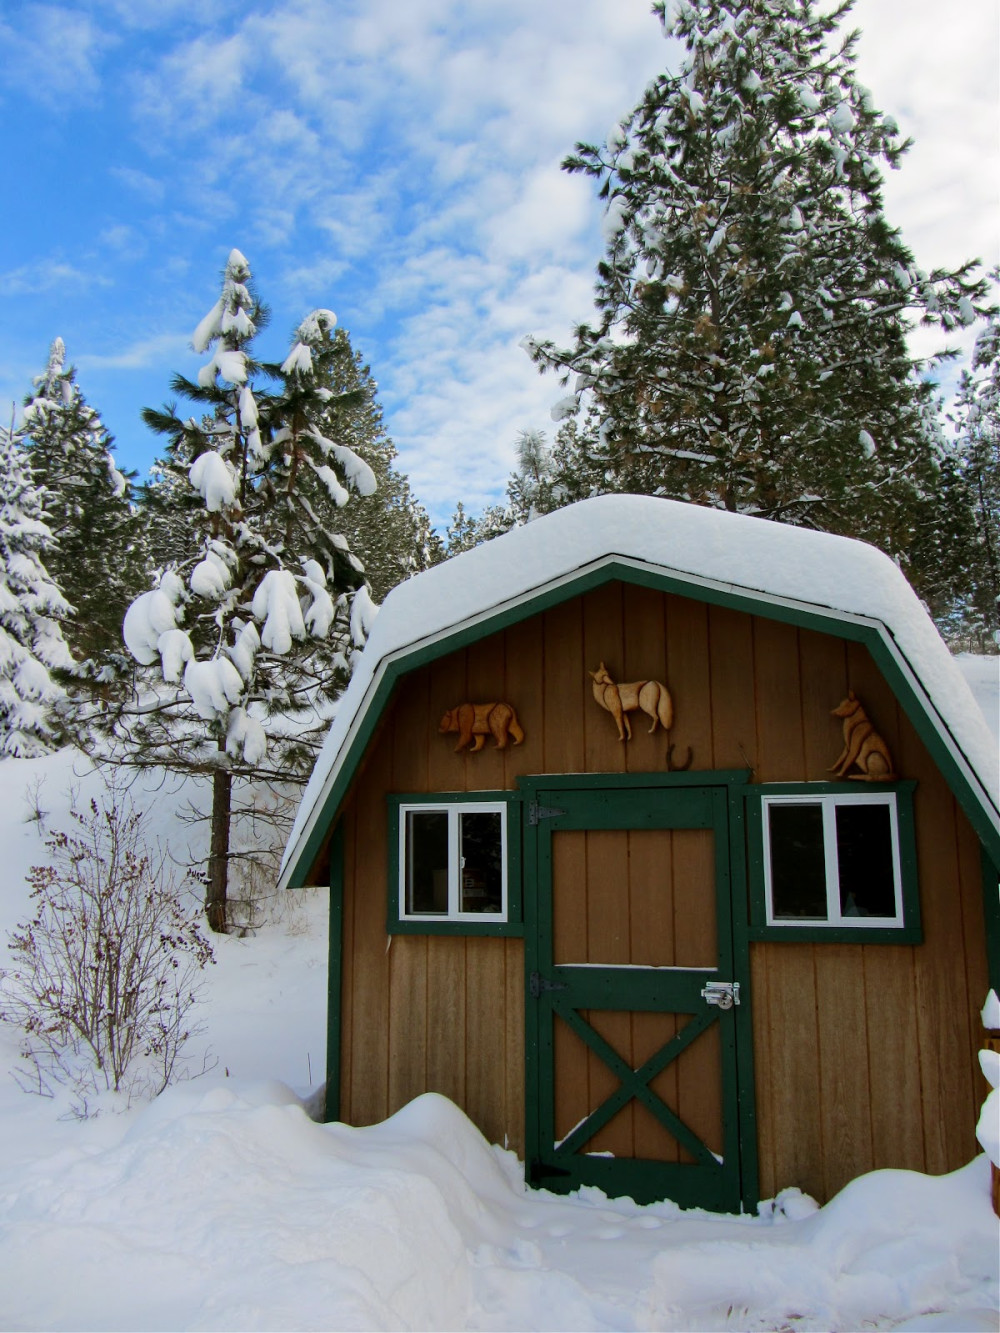 St. Ignatius, Montana Bed and Breakfast in the Winter